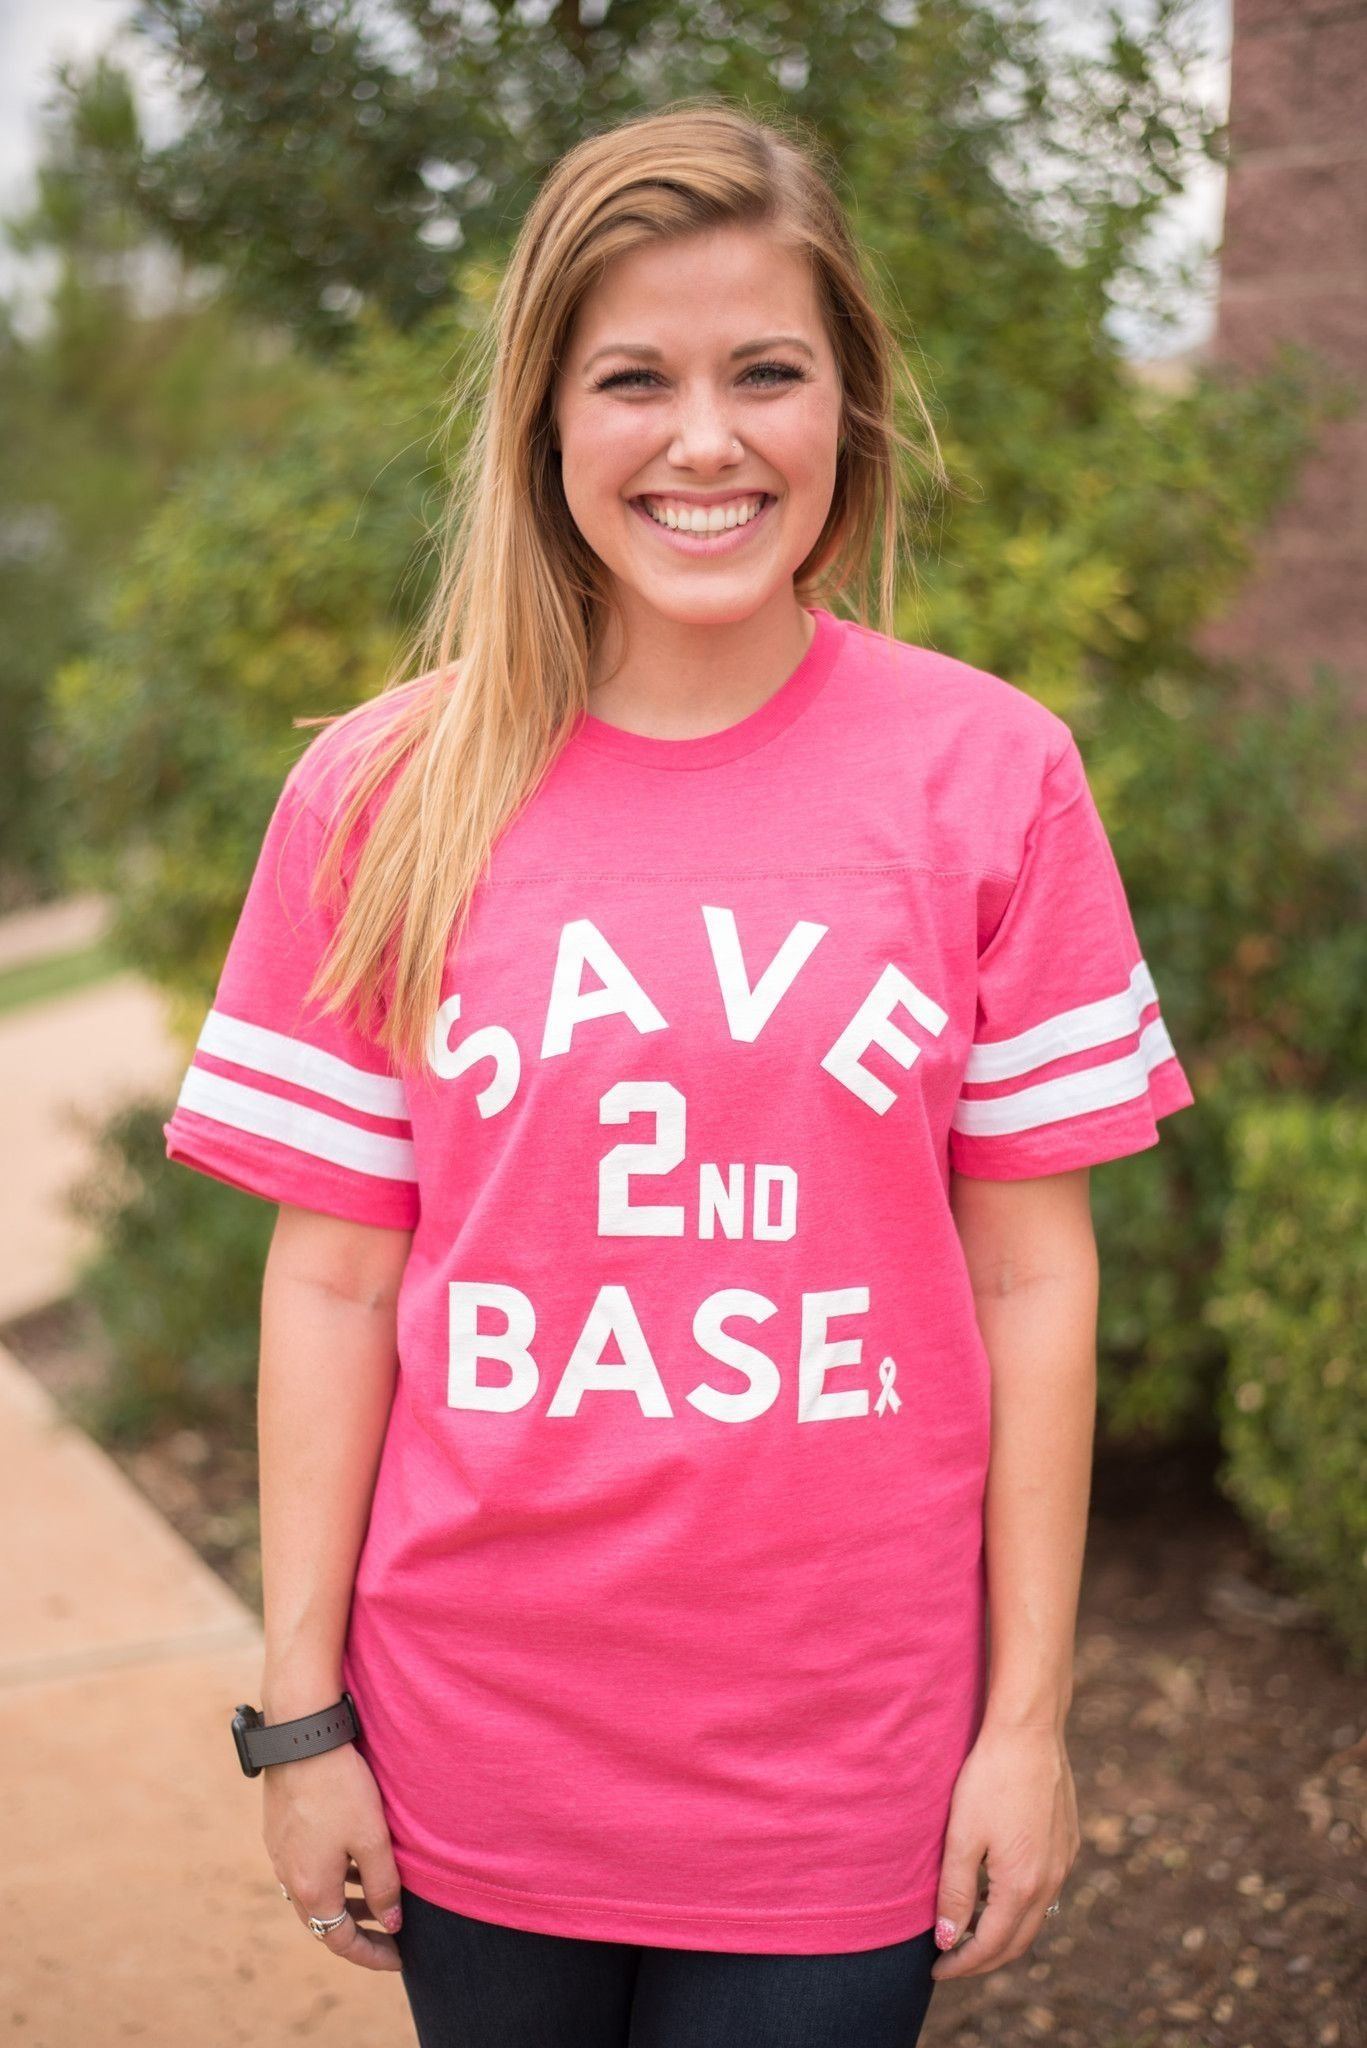 10 Awesome Breast Cancer Awareness Outfit Ideas save second base breast cancer awareness unisex t shirt weve 2020